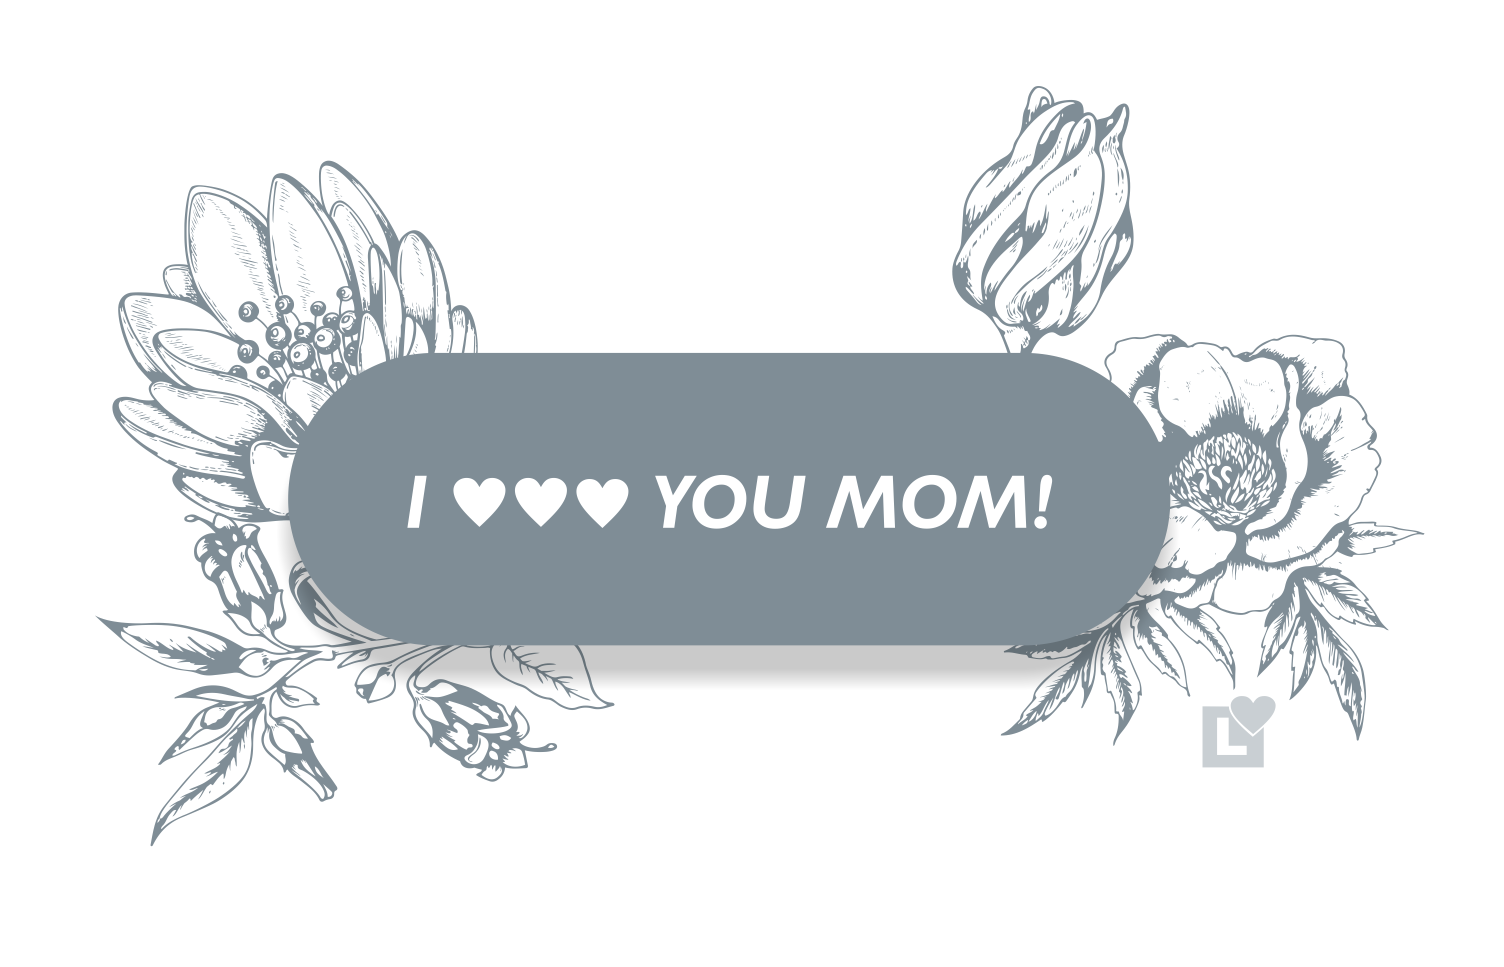 Mothers Day 2019 - Love Right Home Care Referral Agency - I Love You Mothers Day